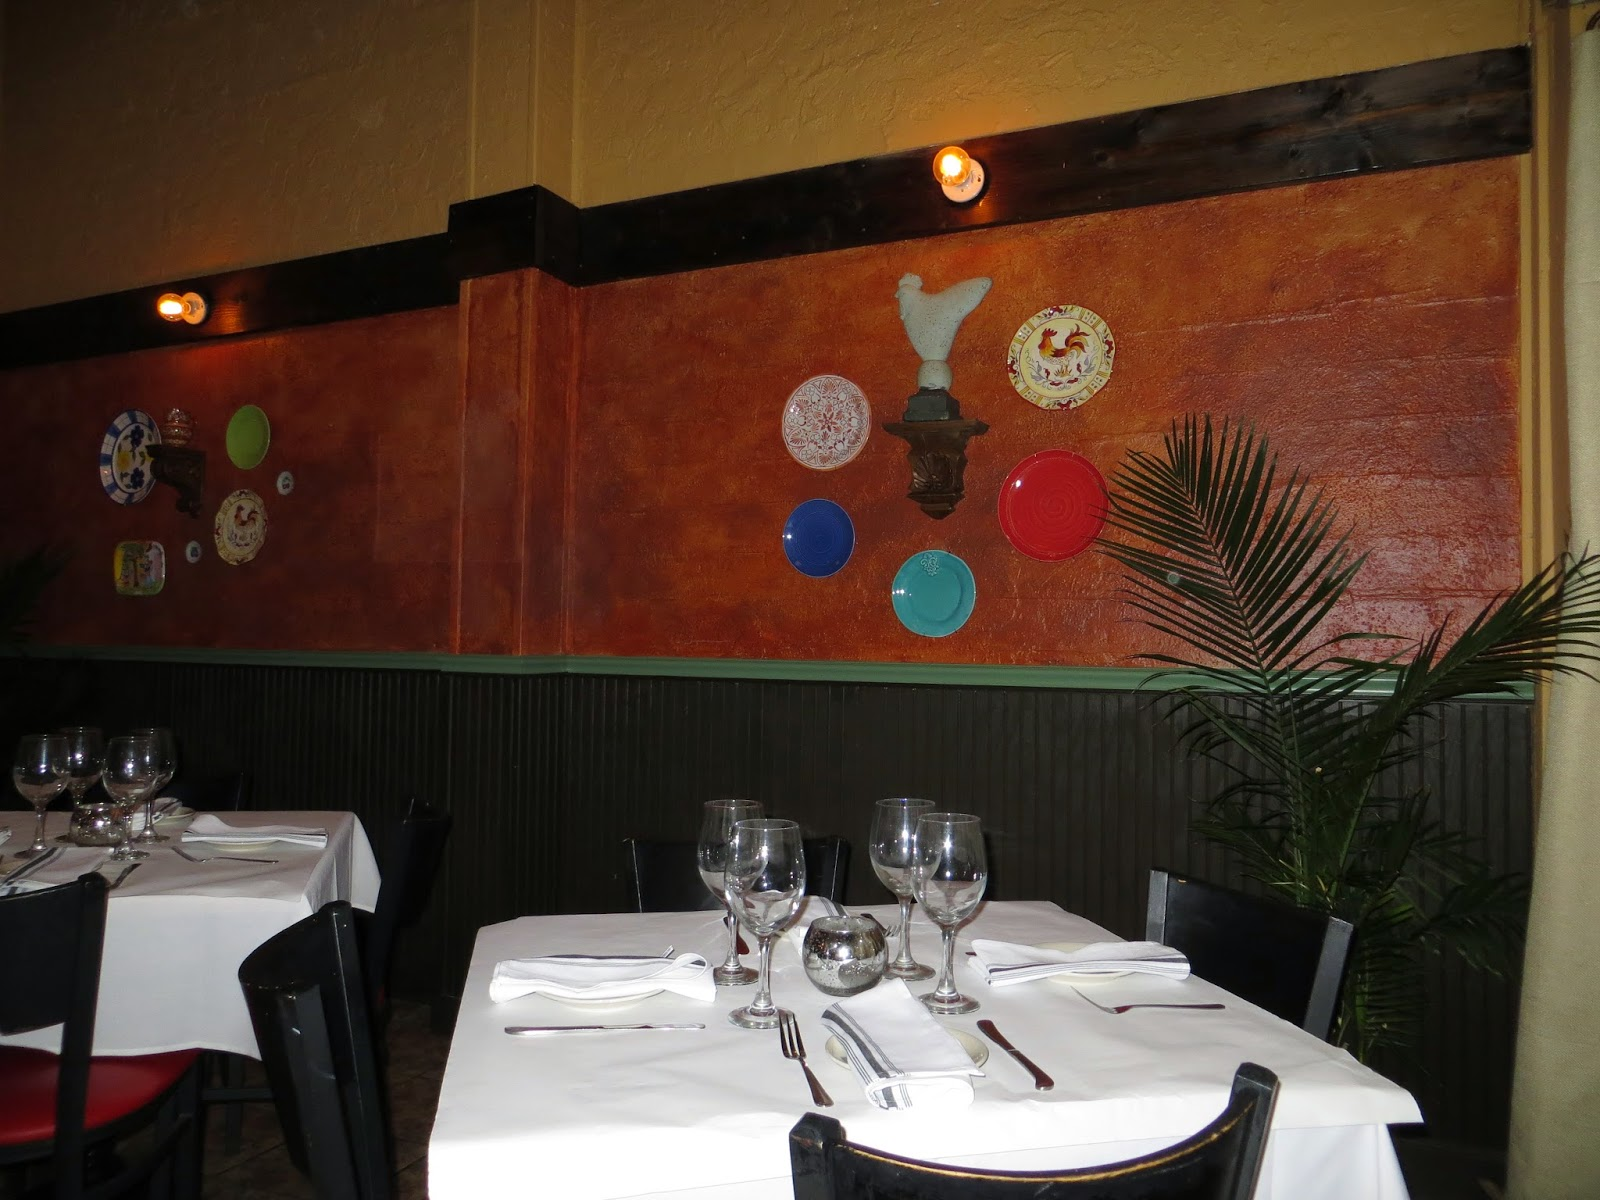 La Cucina Somerville Nj Eating Well Reviews 10 Park La Cucina Italiana Montclair Nj